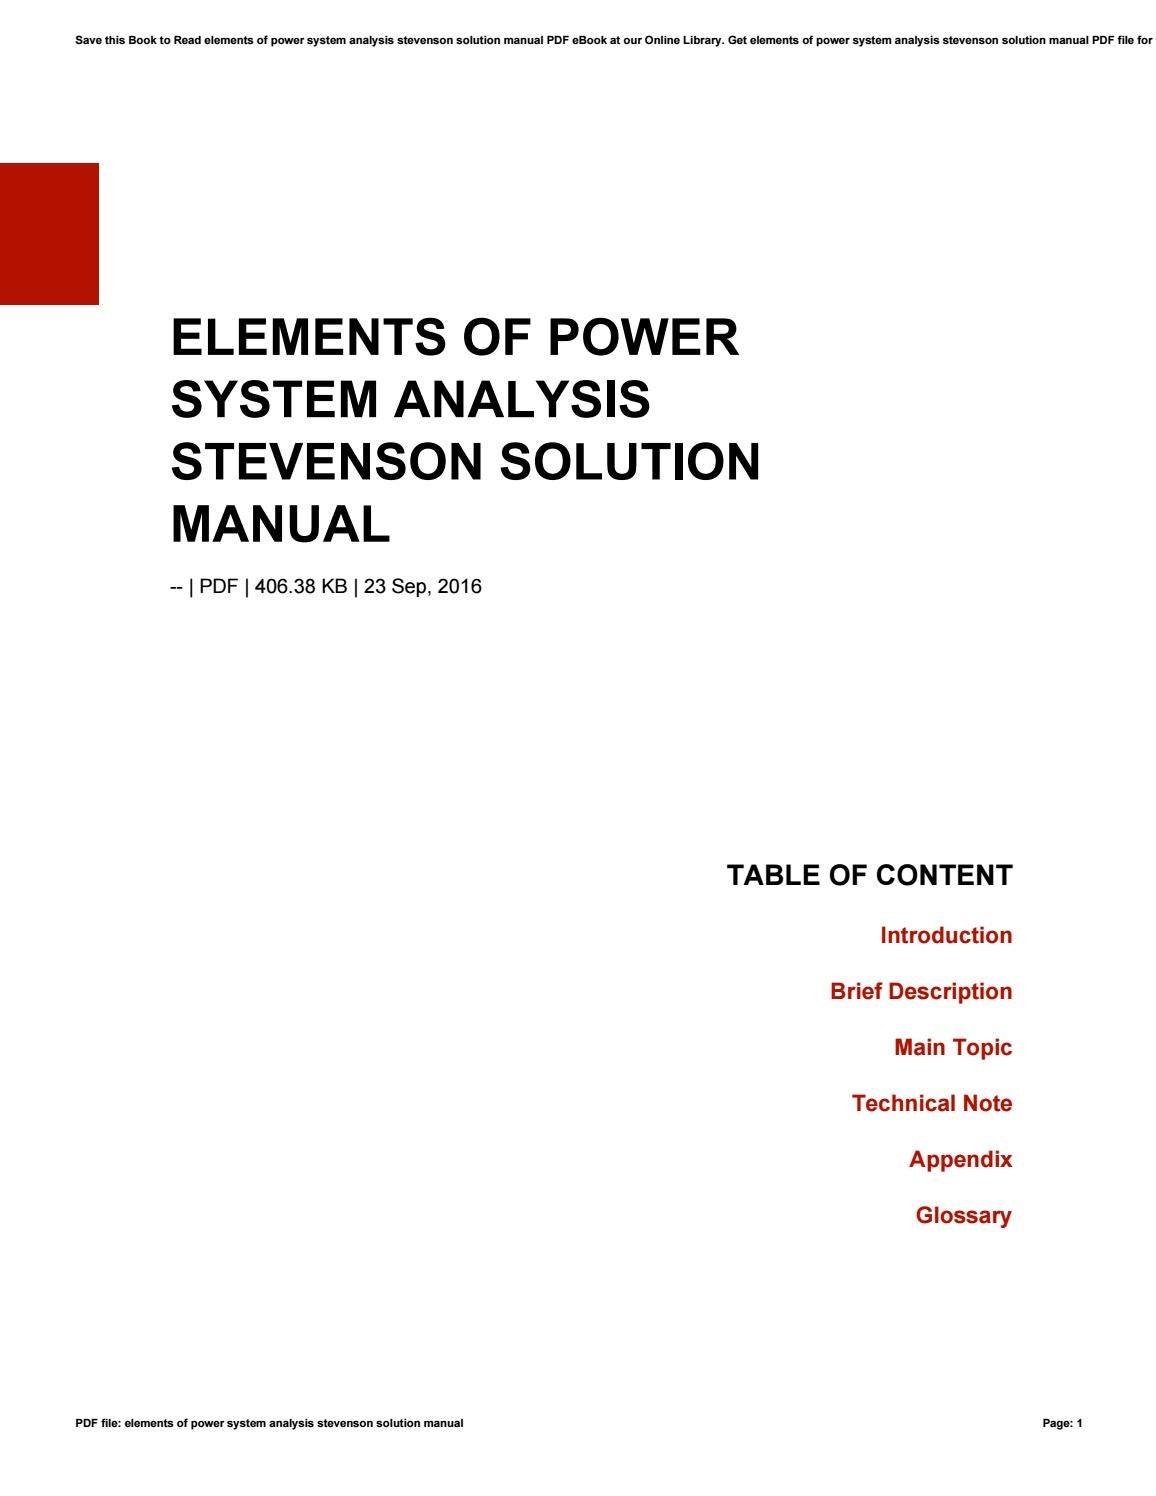 Elements of power system analysis stevenson solution manual by  morriesworld6 - issuu